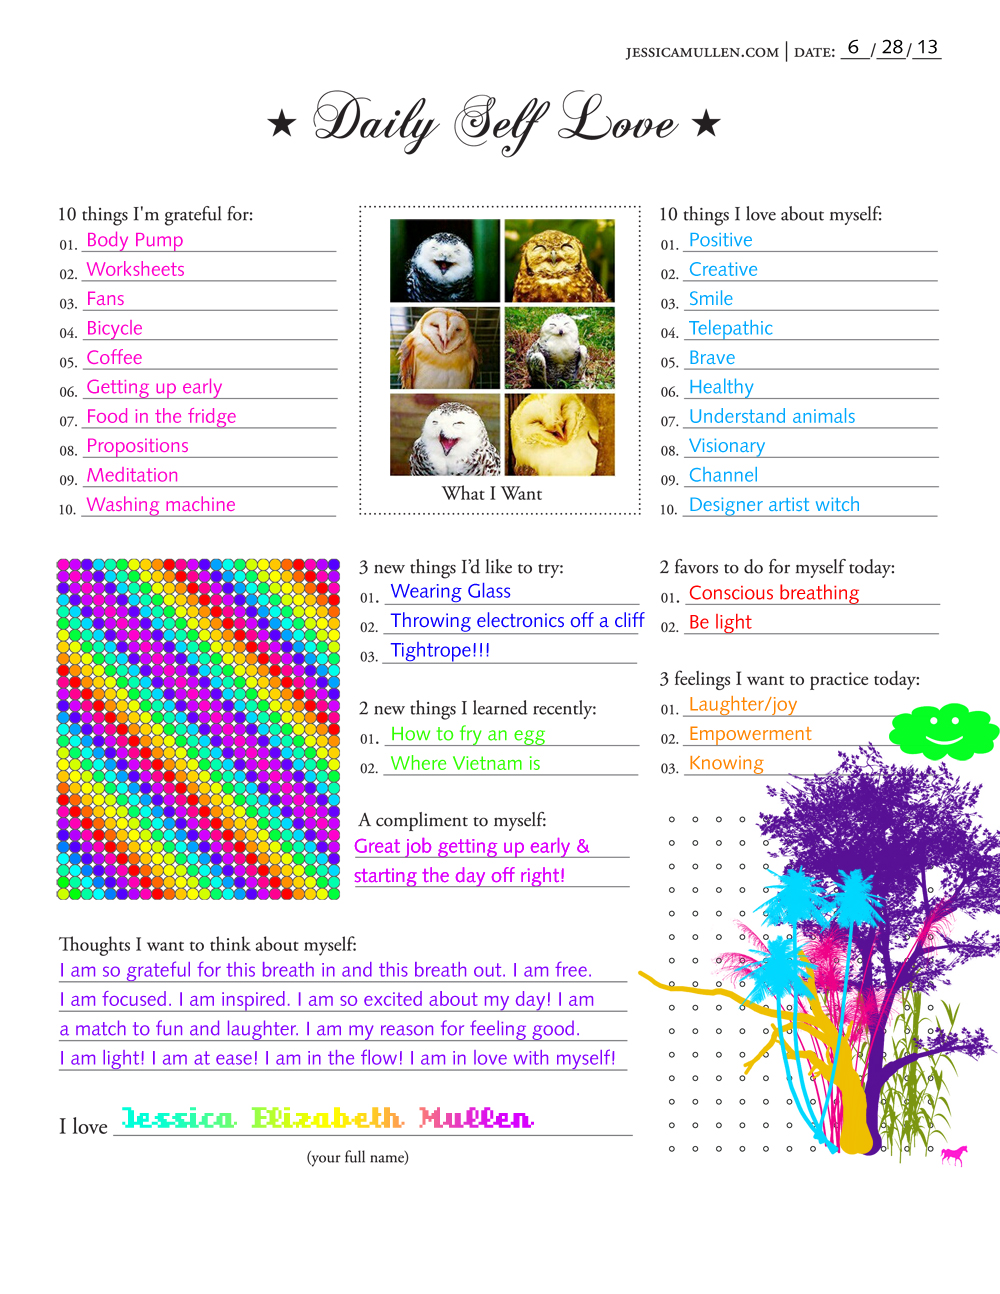 Daily Self Love worksheet for 6.28.2013 | Jessica Mullen